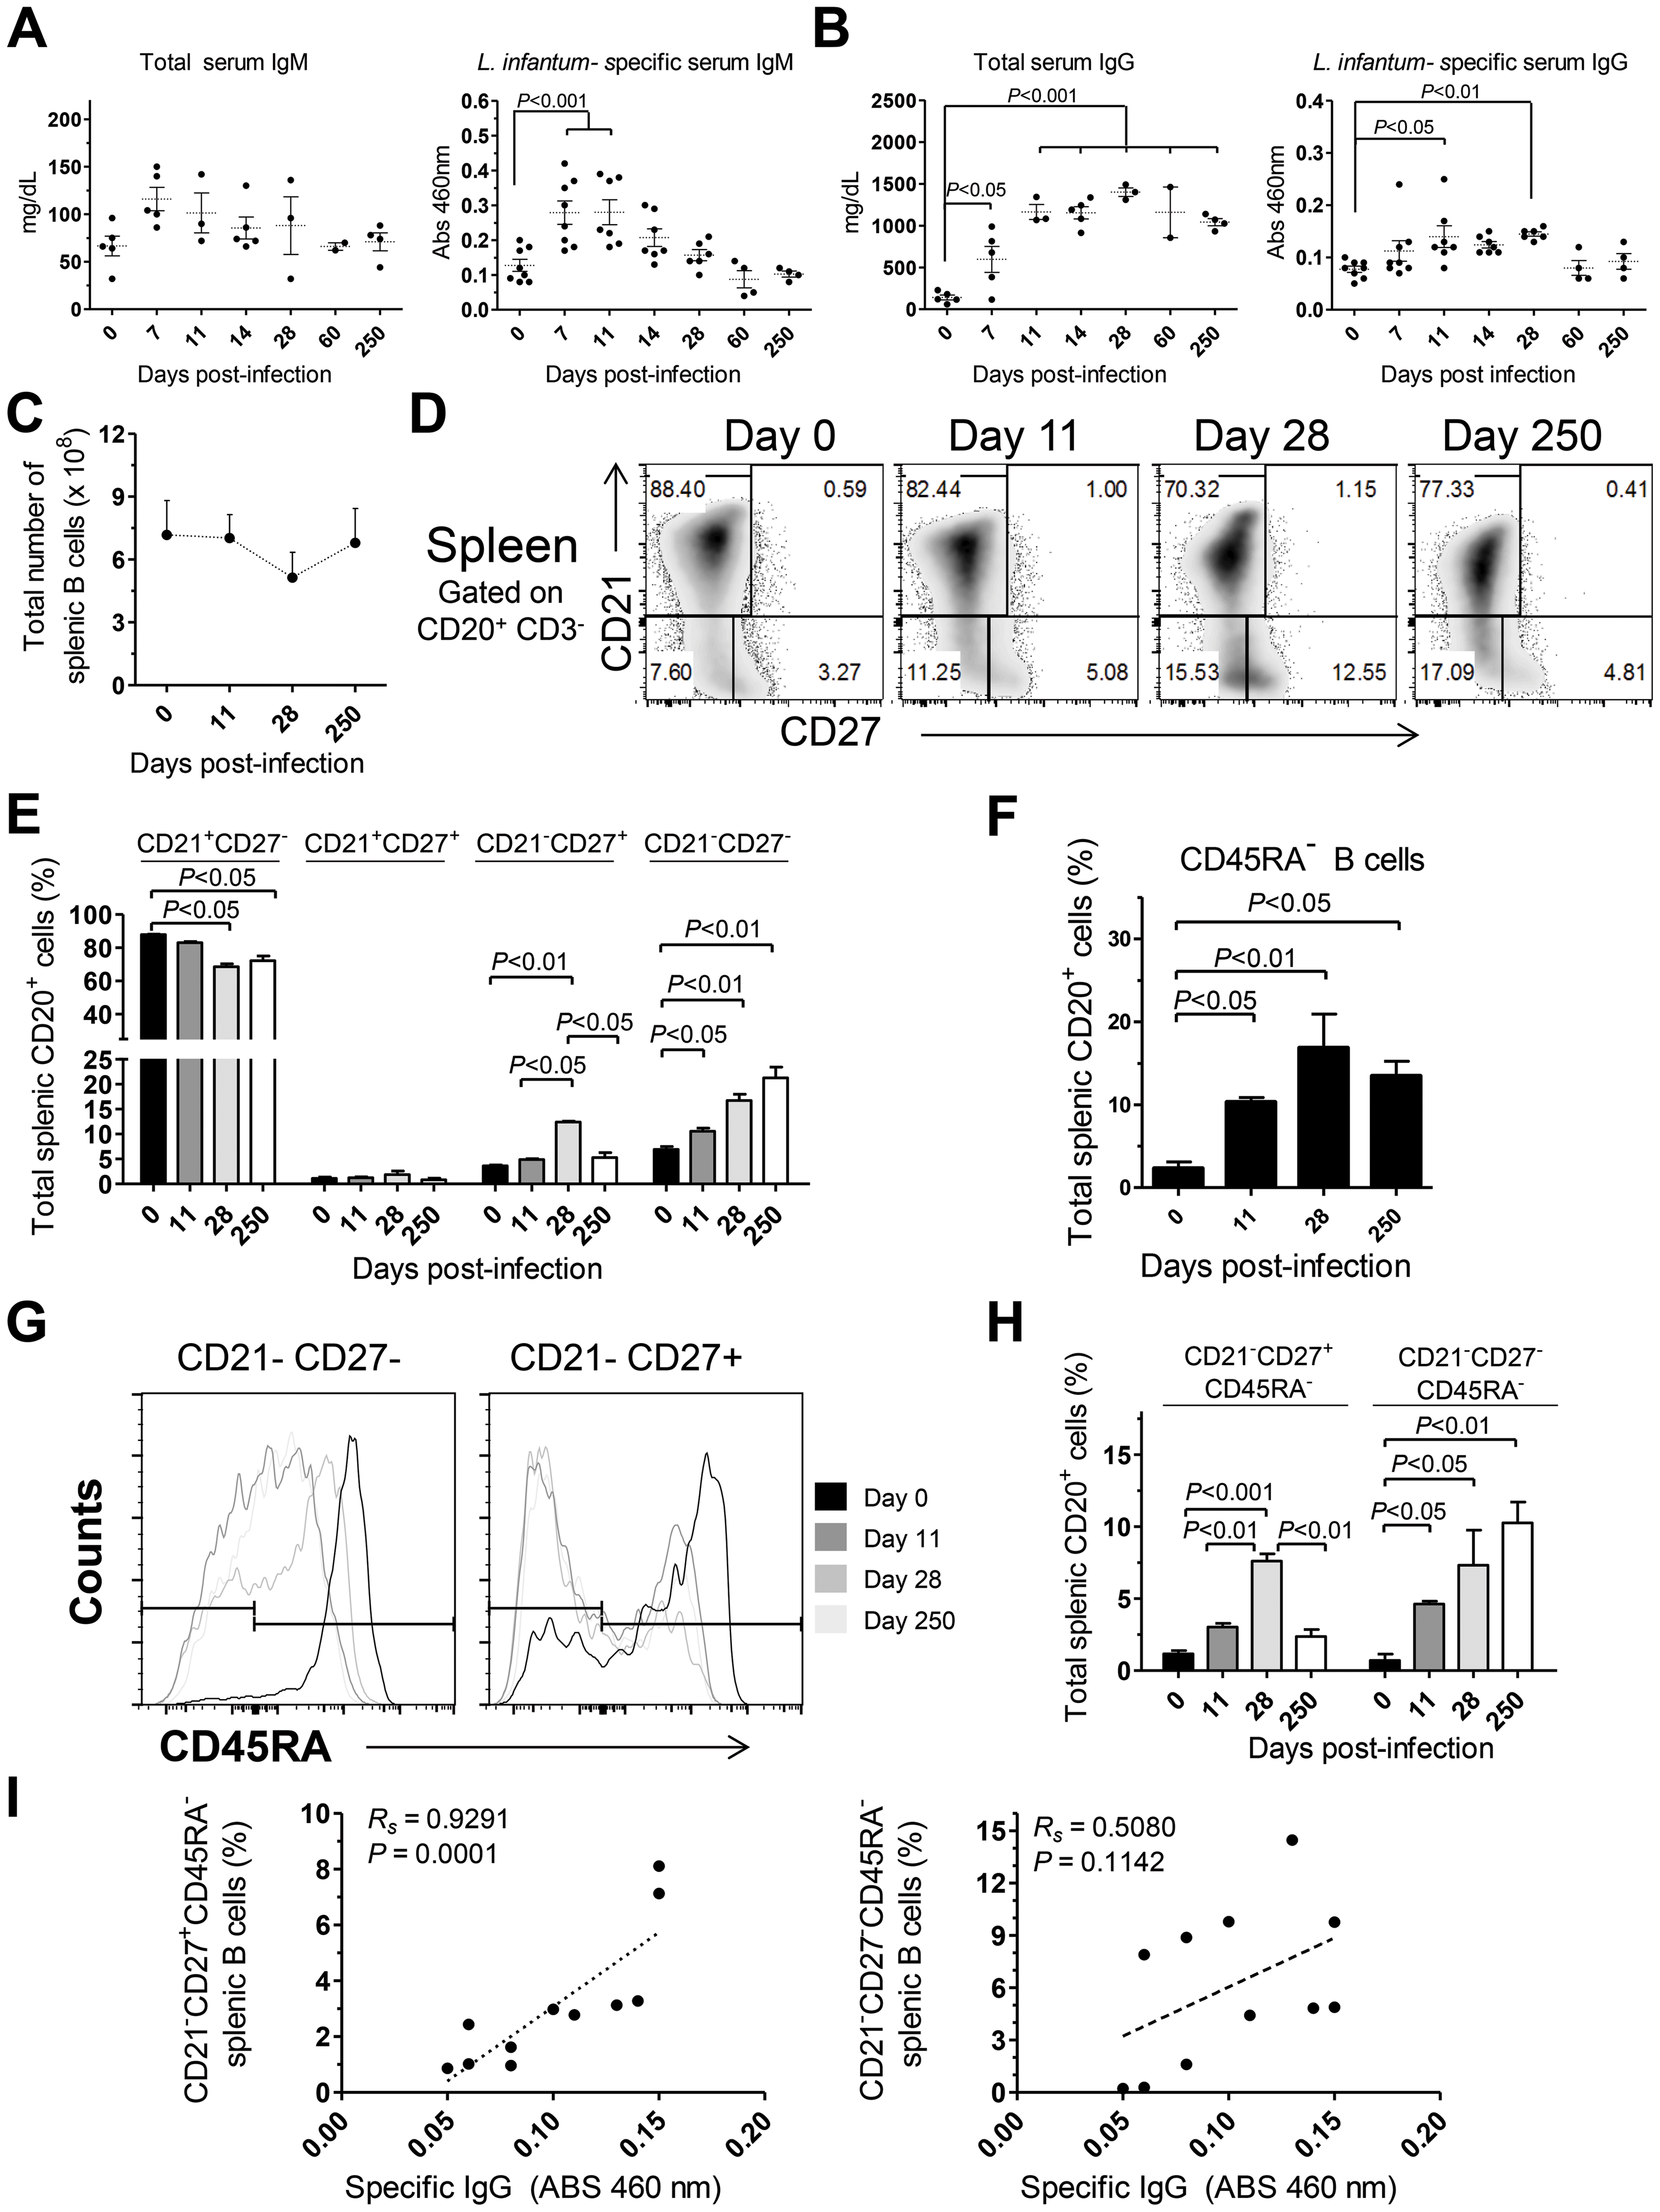 Humoral response and splenic B cell dynamics in <i>L. infantum</i>-infected rhesus macaques.